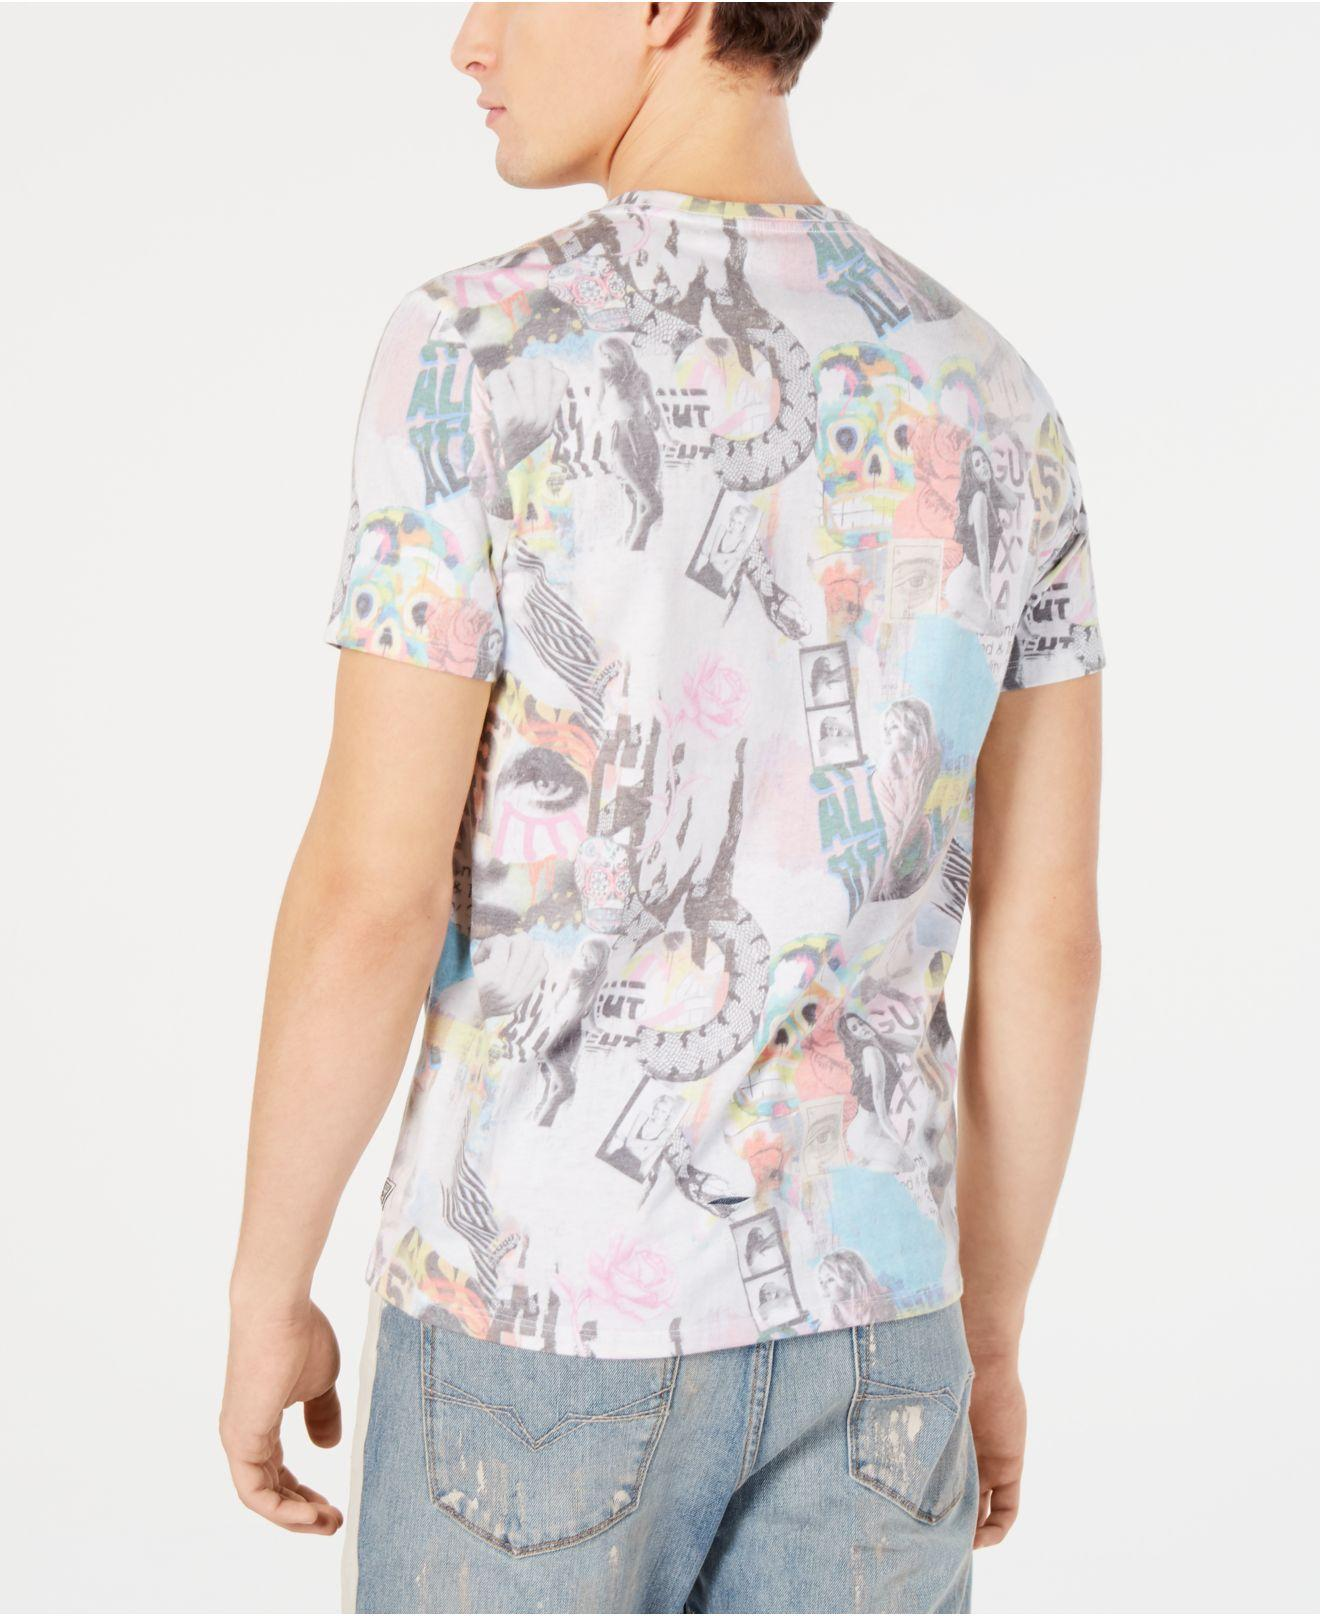 981d050aa402 Lyst - Guess Graffiti Collage Graphic T-shirt in White for Men